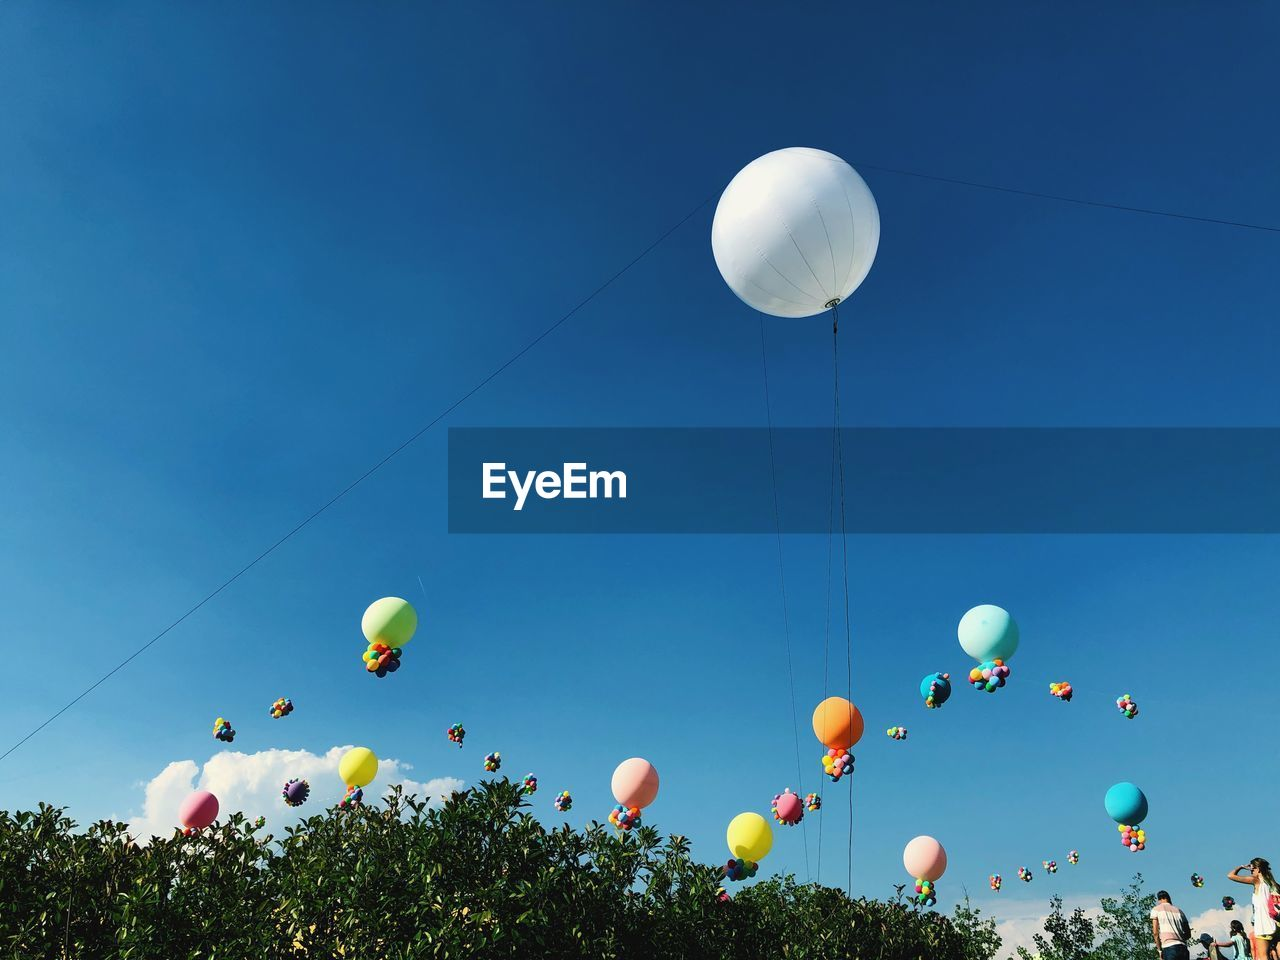 balloon, sky, celebration, low angle view, multi colored, nature, clear sky, day, helium balloon, blue, flying, no people, mid-air, string, sunlight, decoration, outdoors, event, white color, vulnerability, ballooning festival